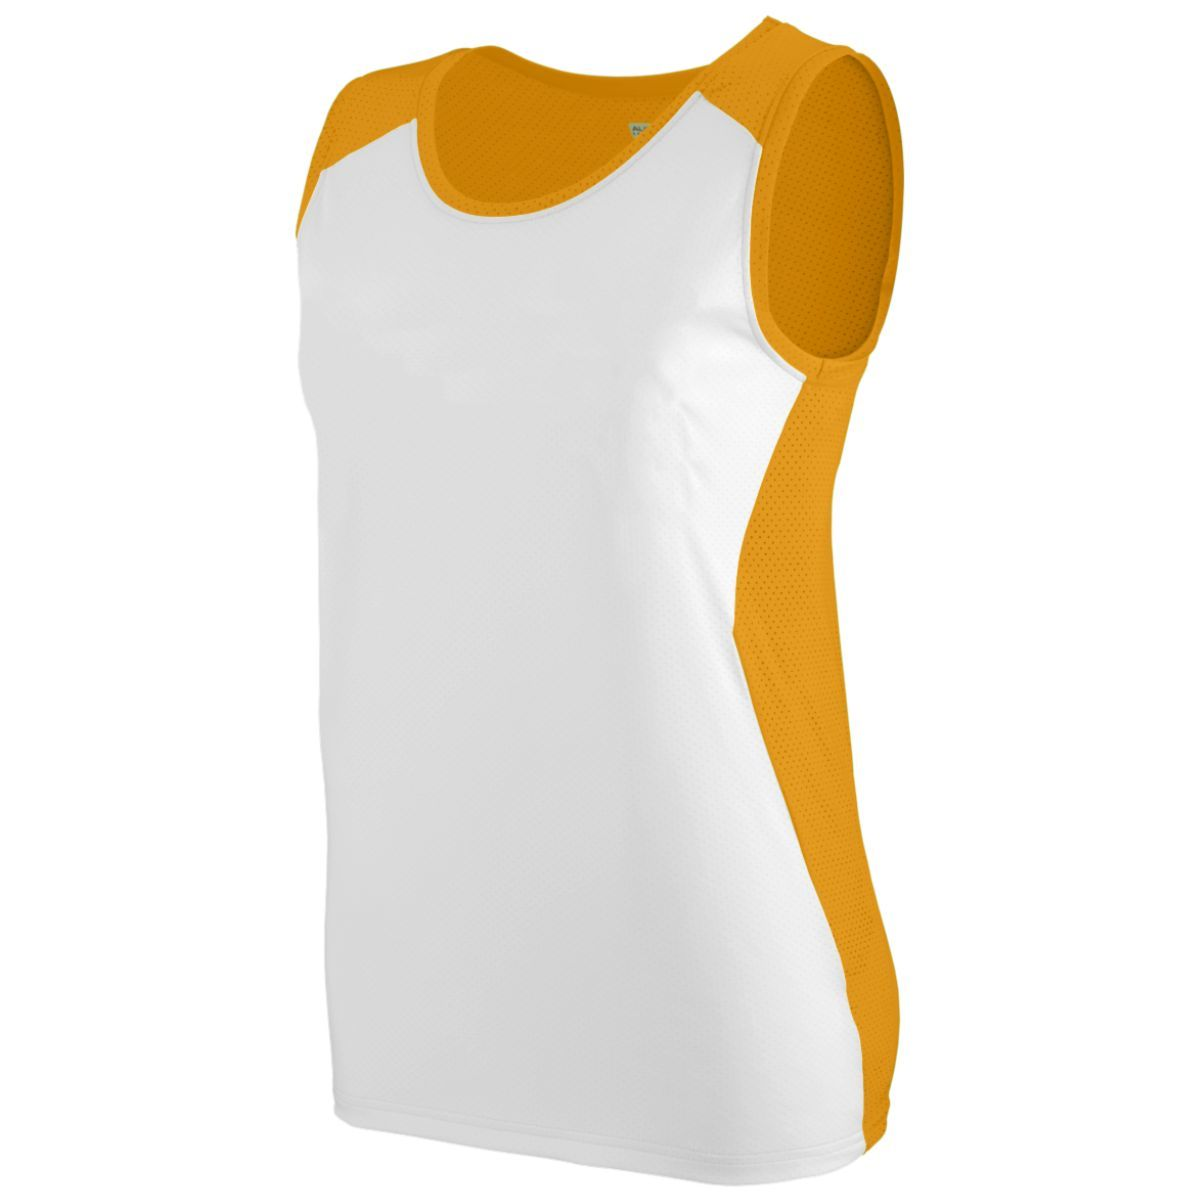 Ladies Alize Jersey - GOLD/WHITE